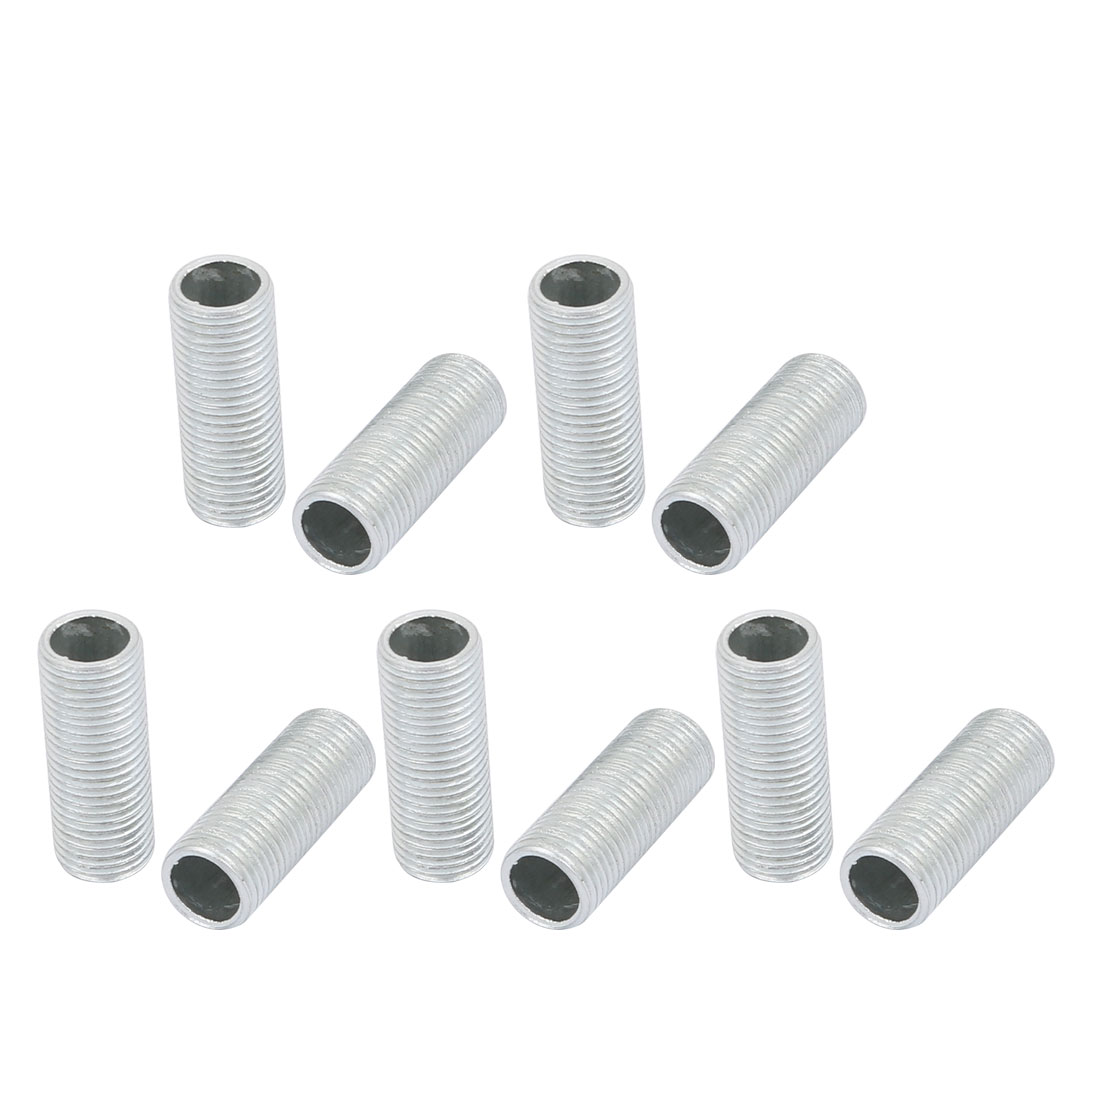 10Pcs M10 1mm Pitch Threaded Zinc Plated Pipe Nipple Lamp Parts 25mm Long